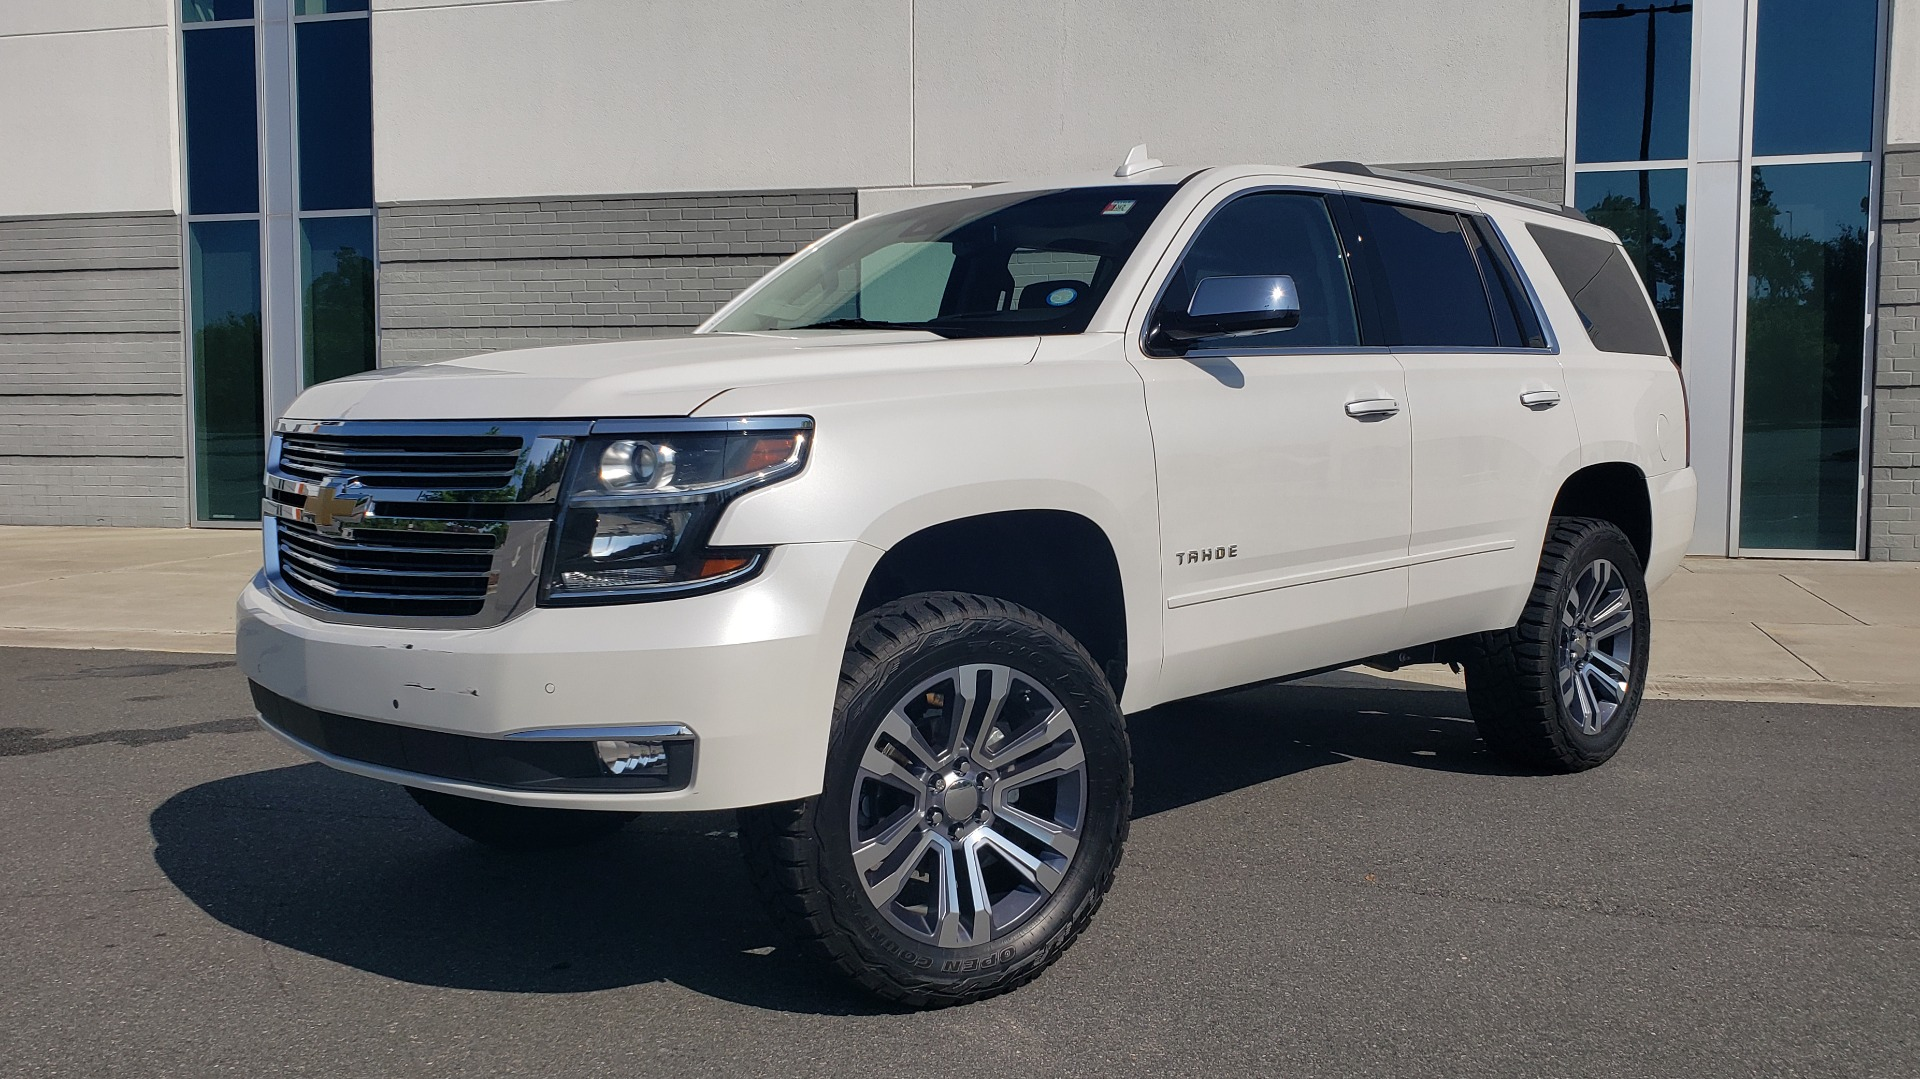 Used 2018 Chevrolet TAHOE PREMIER 4X4 / NAV / BOSE / SUNROOF / ENT SYS / 3-ROW / REARVIEW for sale $55,995 at Formula Imports in Charlotte NC 28227 89